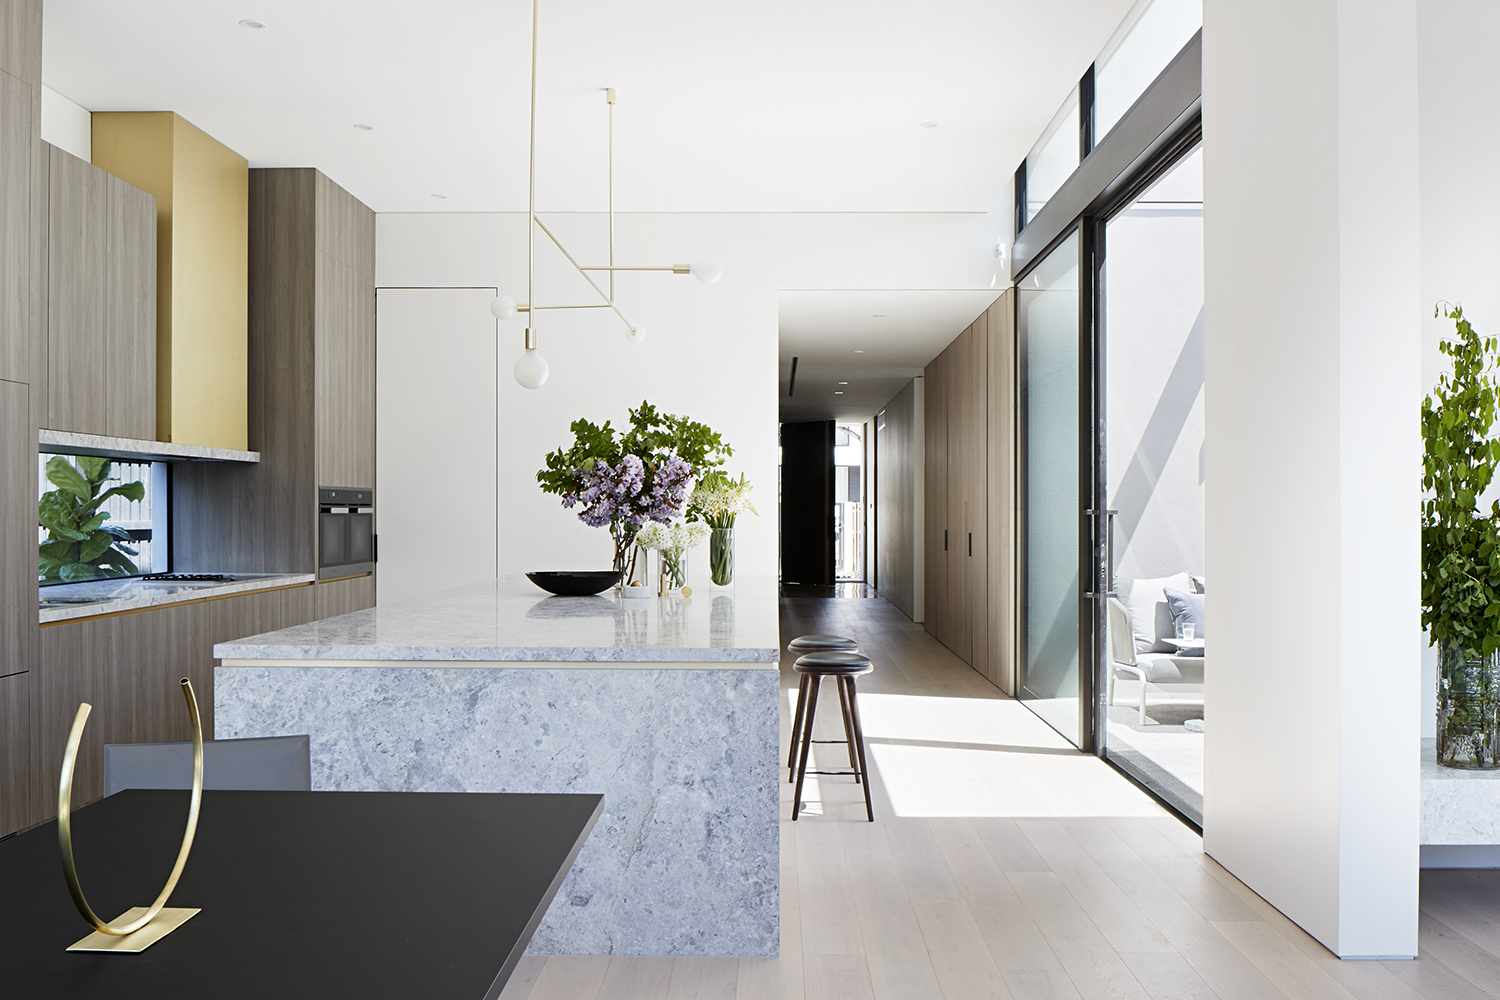 The Concrete Conceal House By Tecture Local Australian Interior Design & Residential Architecture Caulfield, Melbourne Image 11